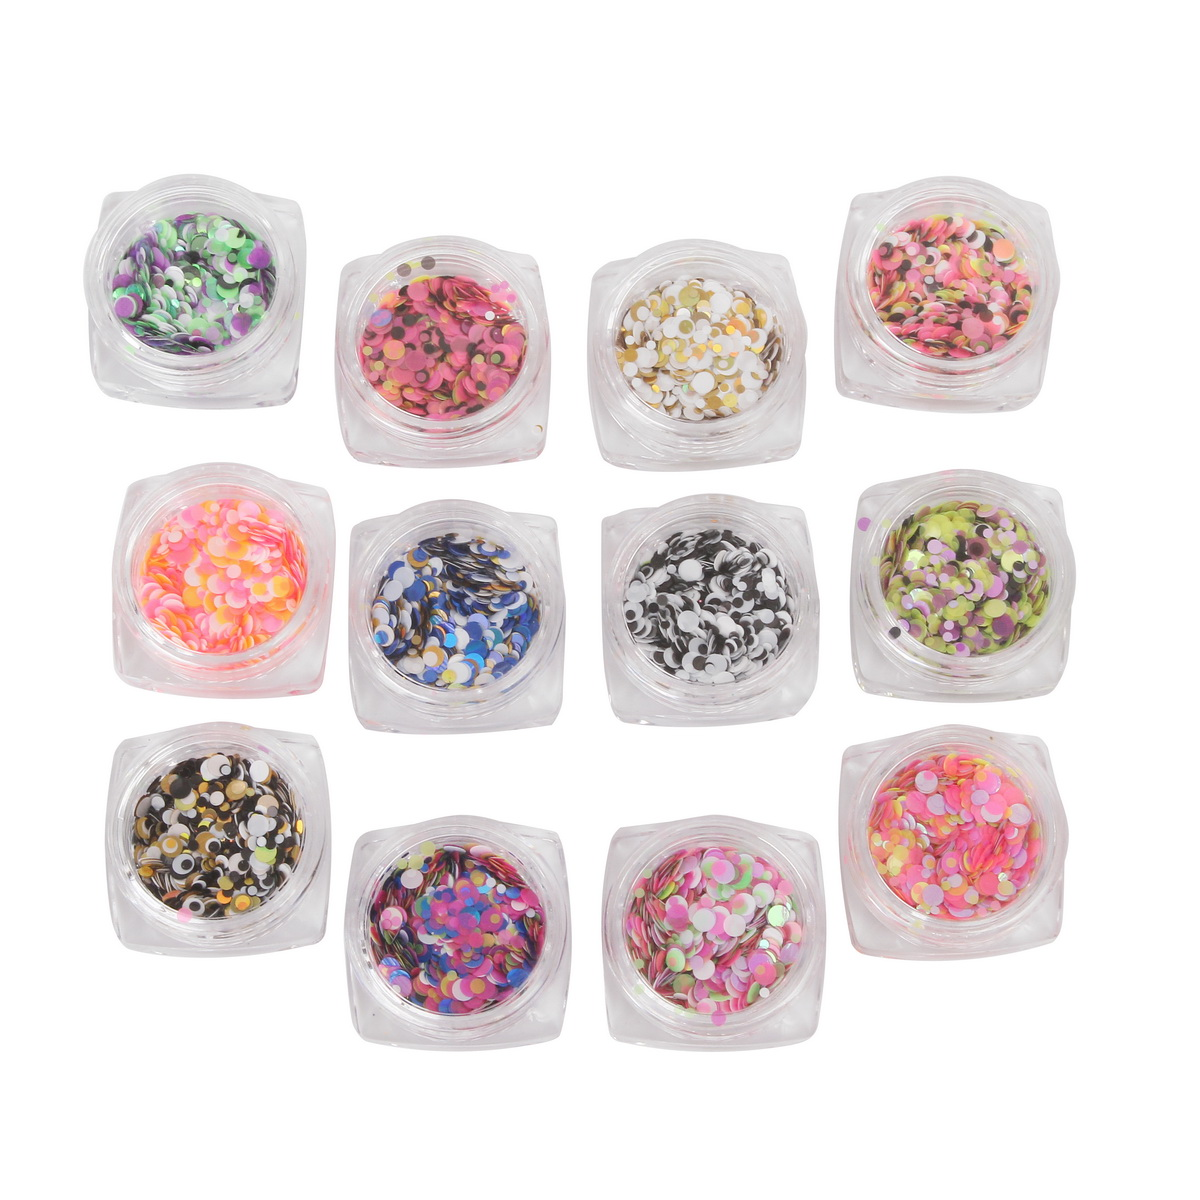 12pcs Nail Decoration Glitter Sequins Round Tips DIY Design Manicure Staff Colorful Ornaments